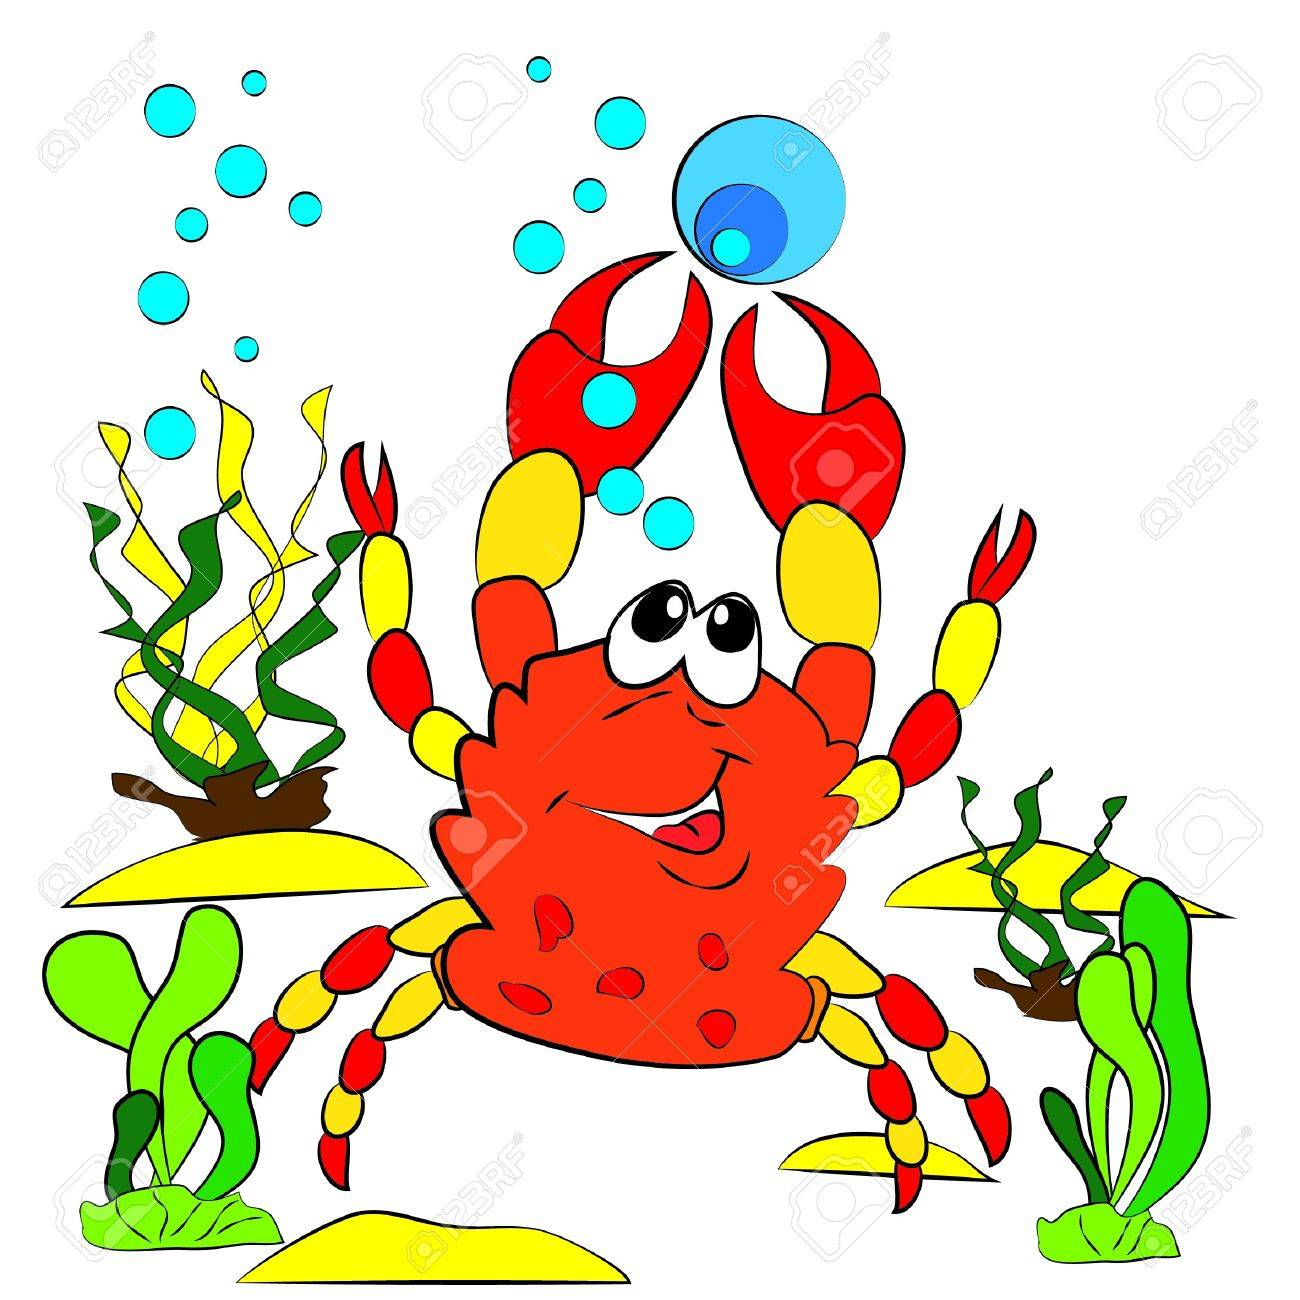 painted crab stock photos u0026 pictures royalty free painted crab